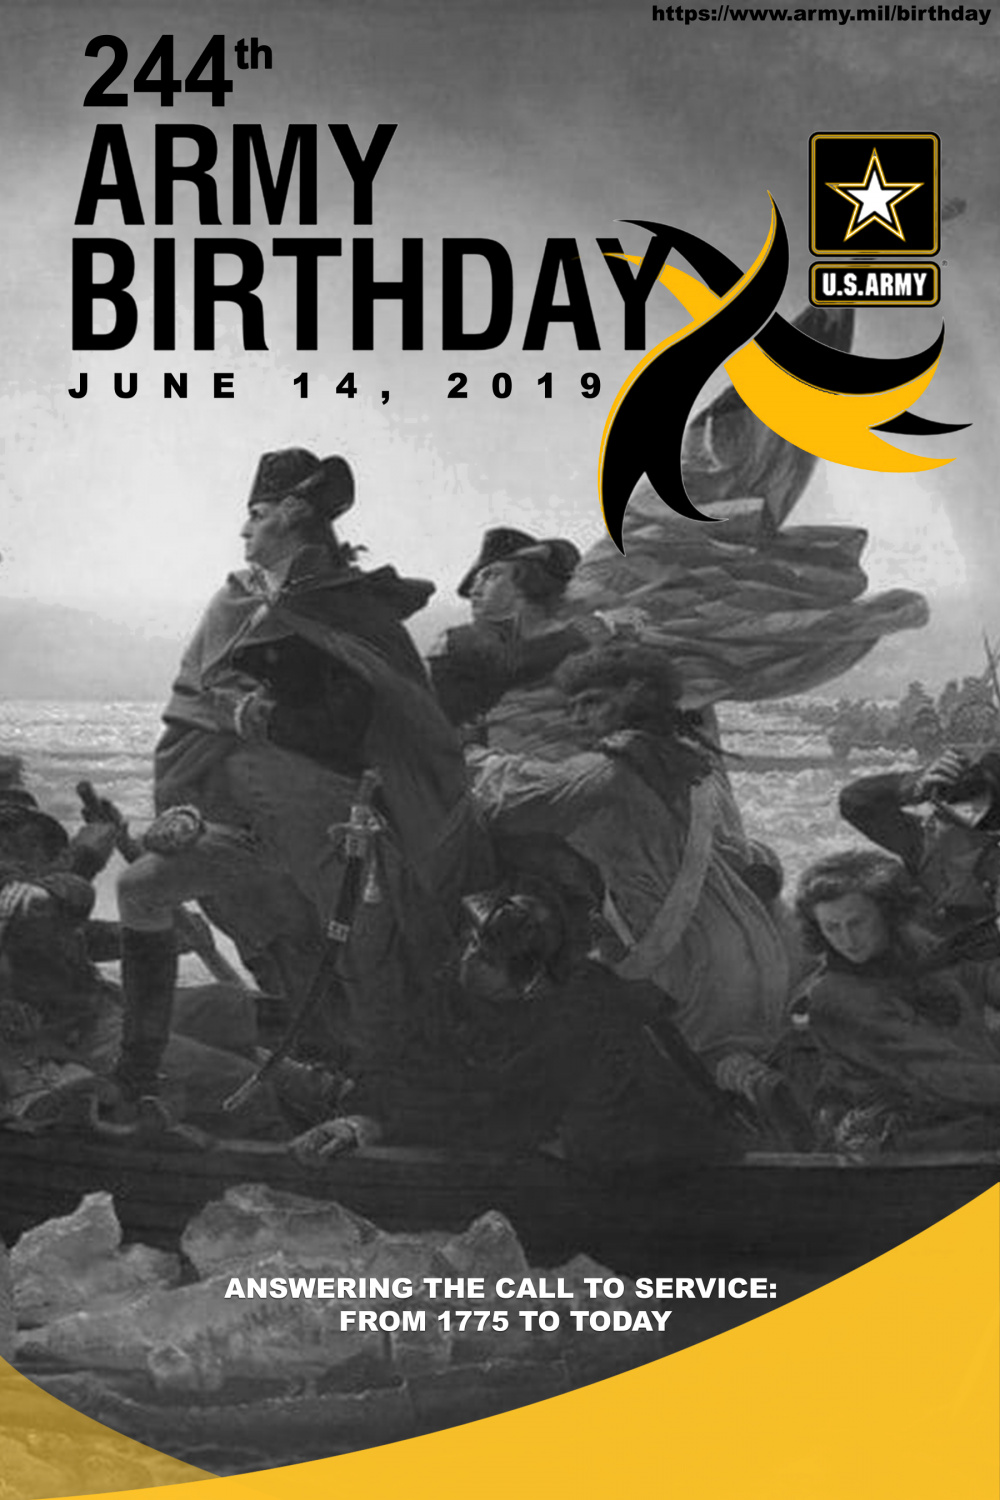 244th Army Birthday Poster design(1775)